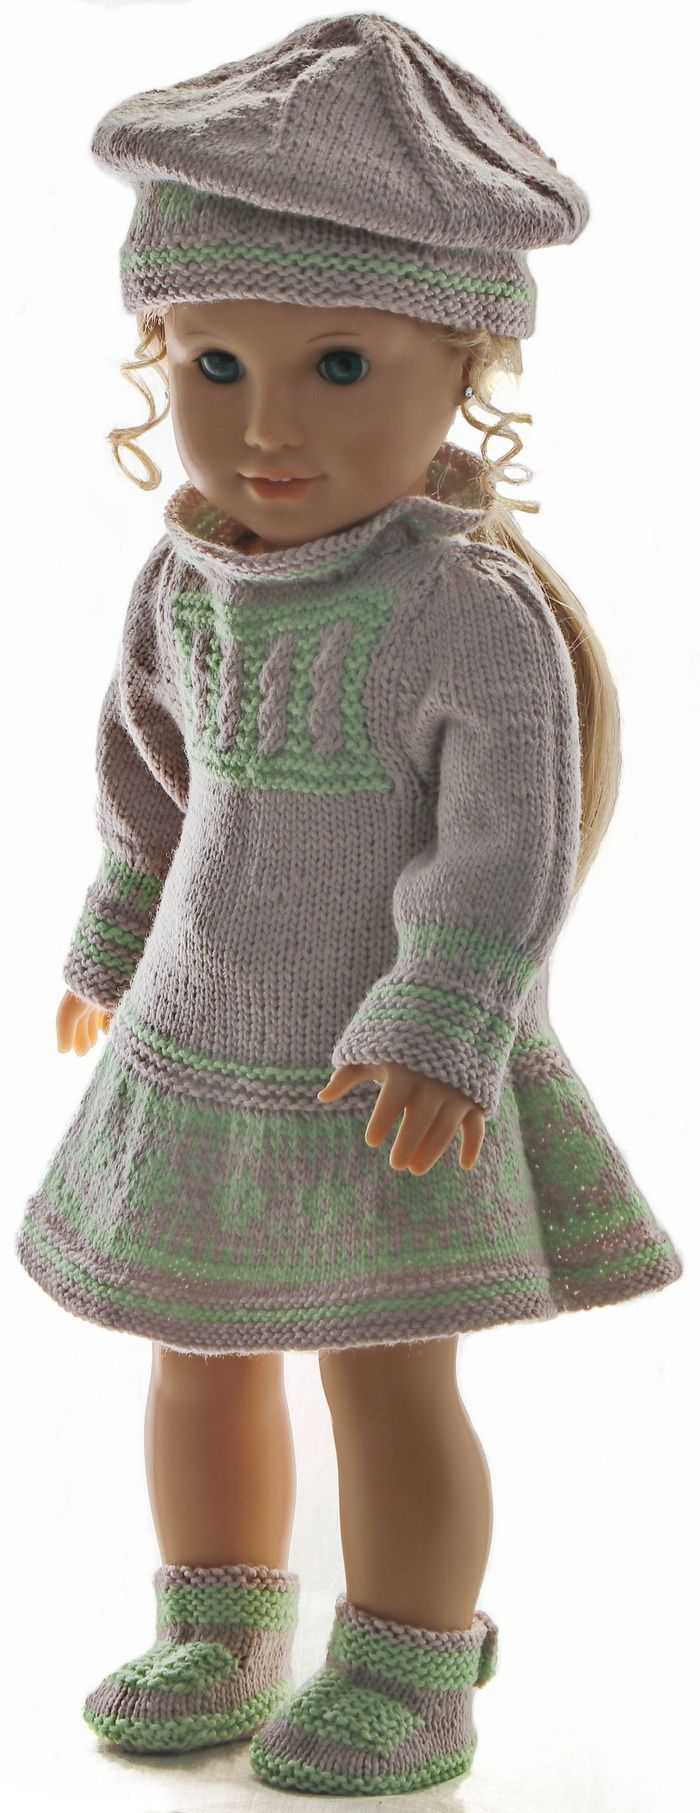 Famous Dolls Clothes Knitting Patterns Pattern - Sewing Pattern for ...